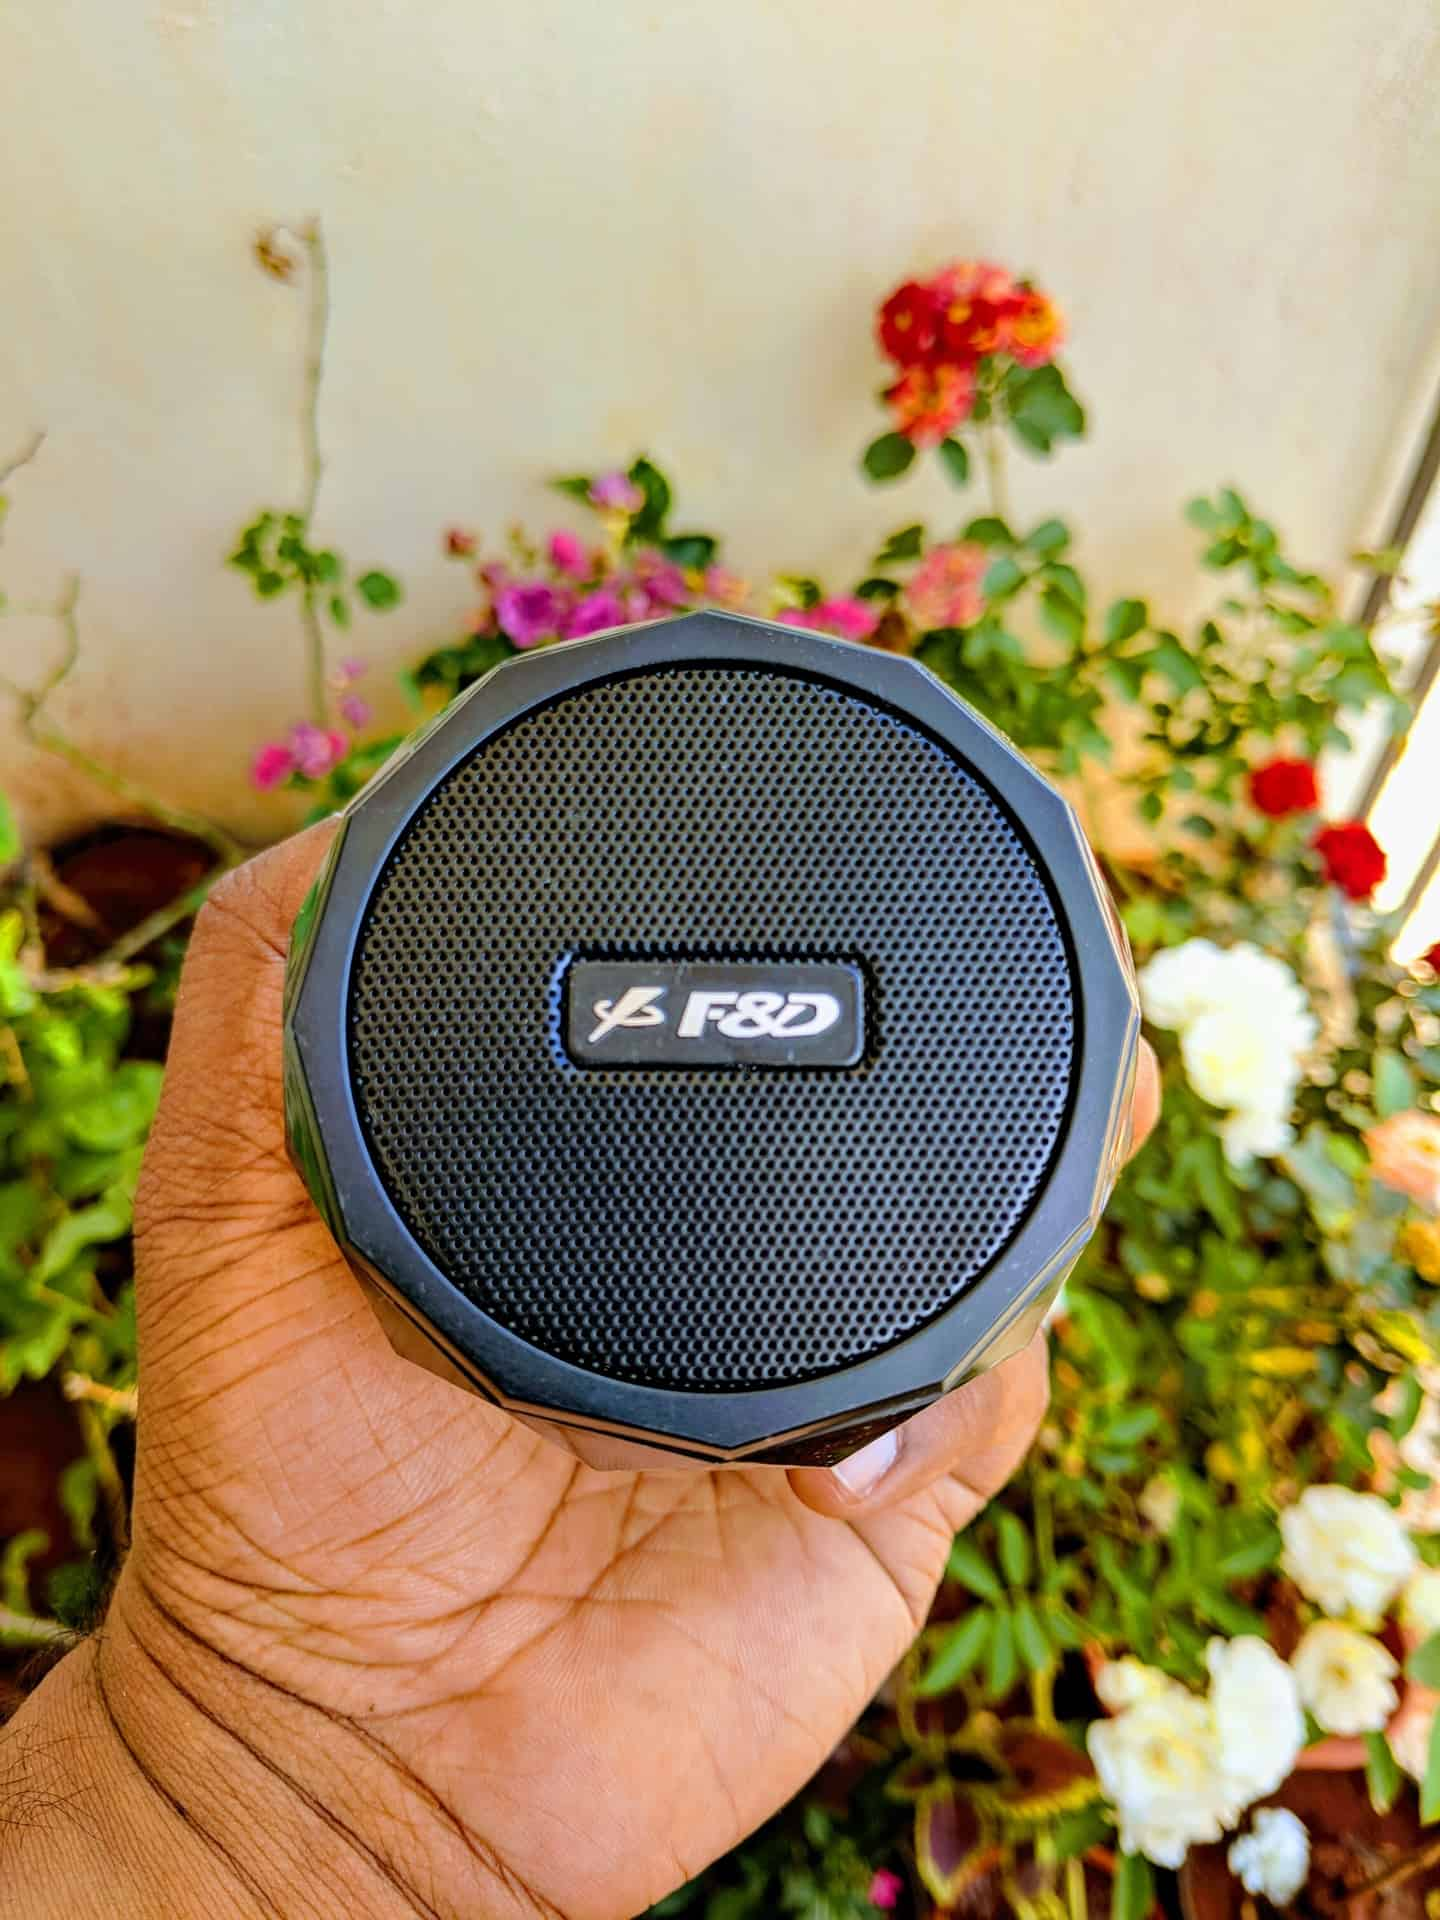 F&D W8 Portable Bluetooth Speaker Review - 3